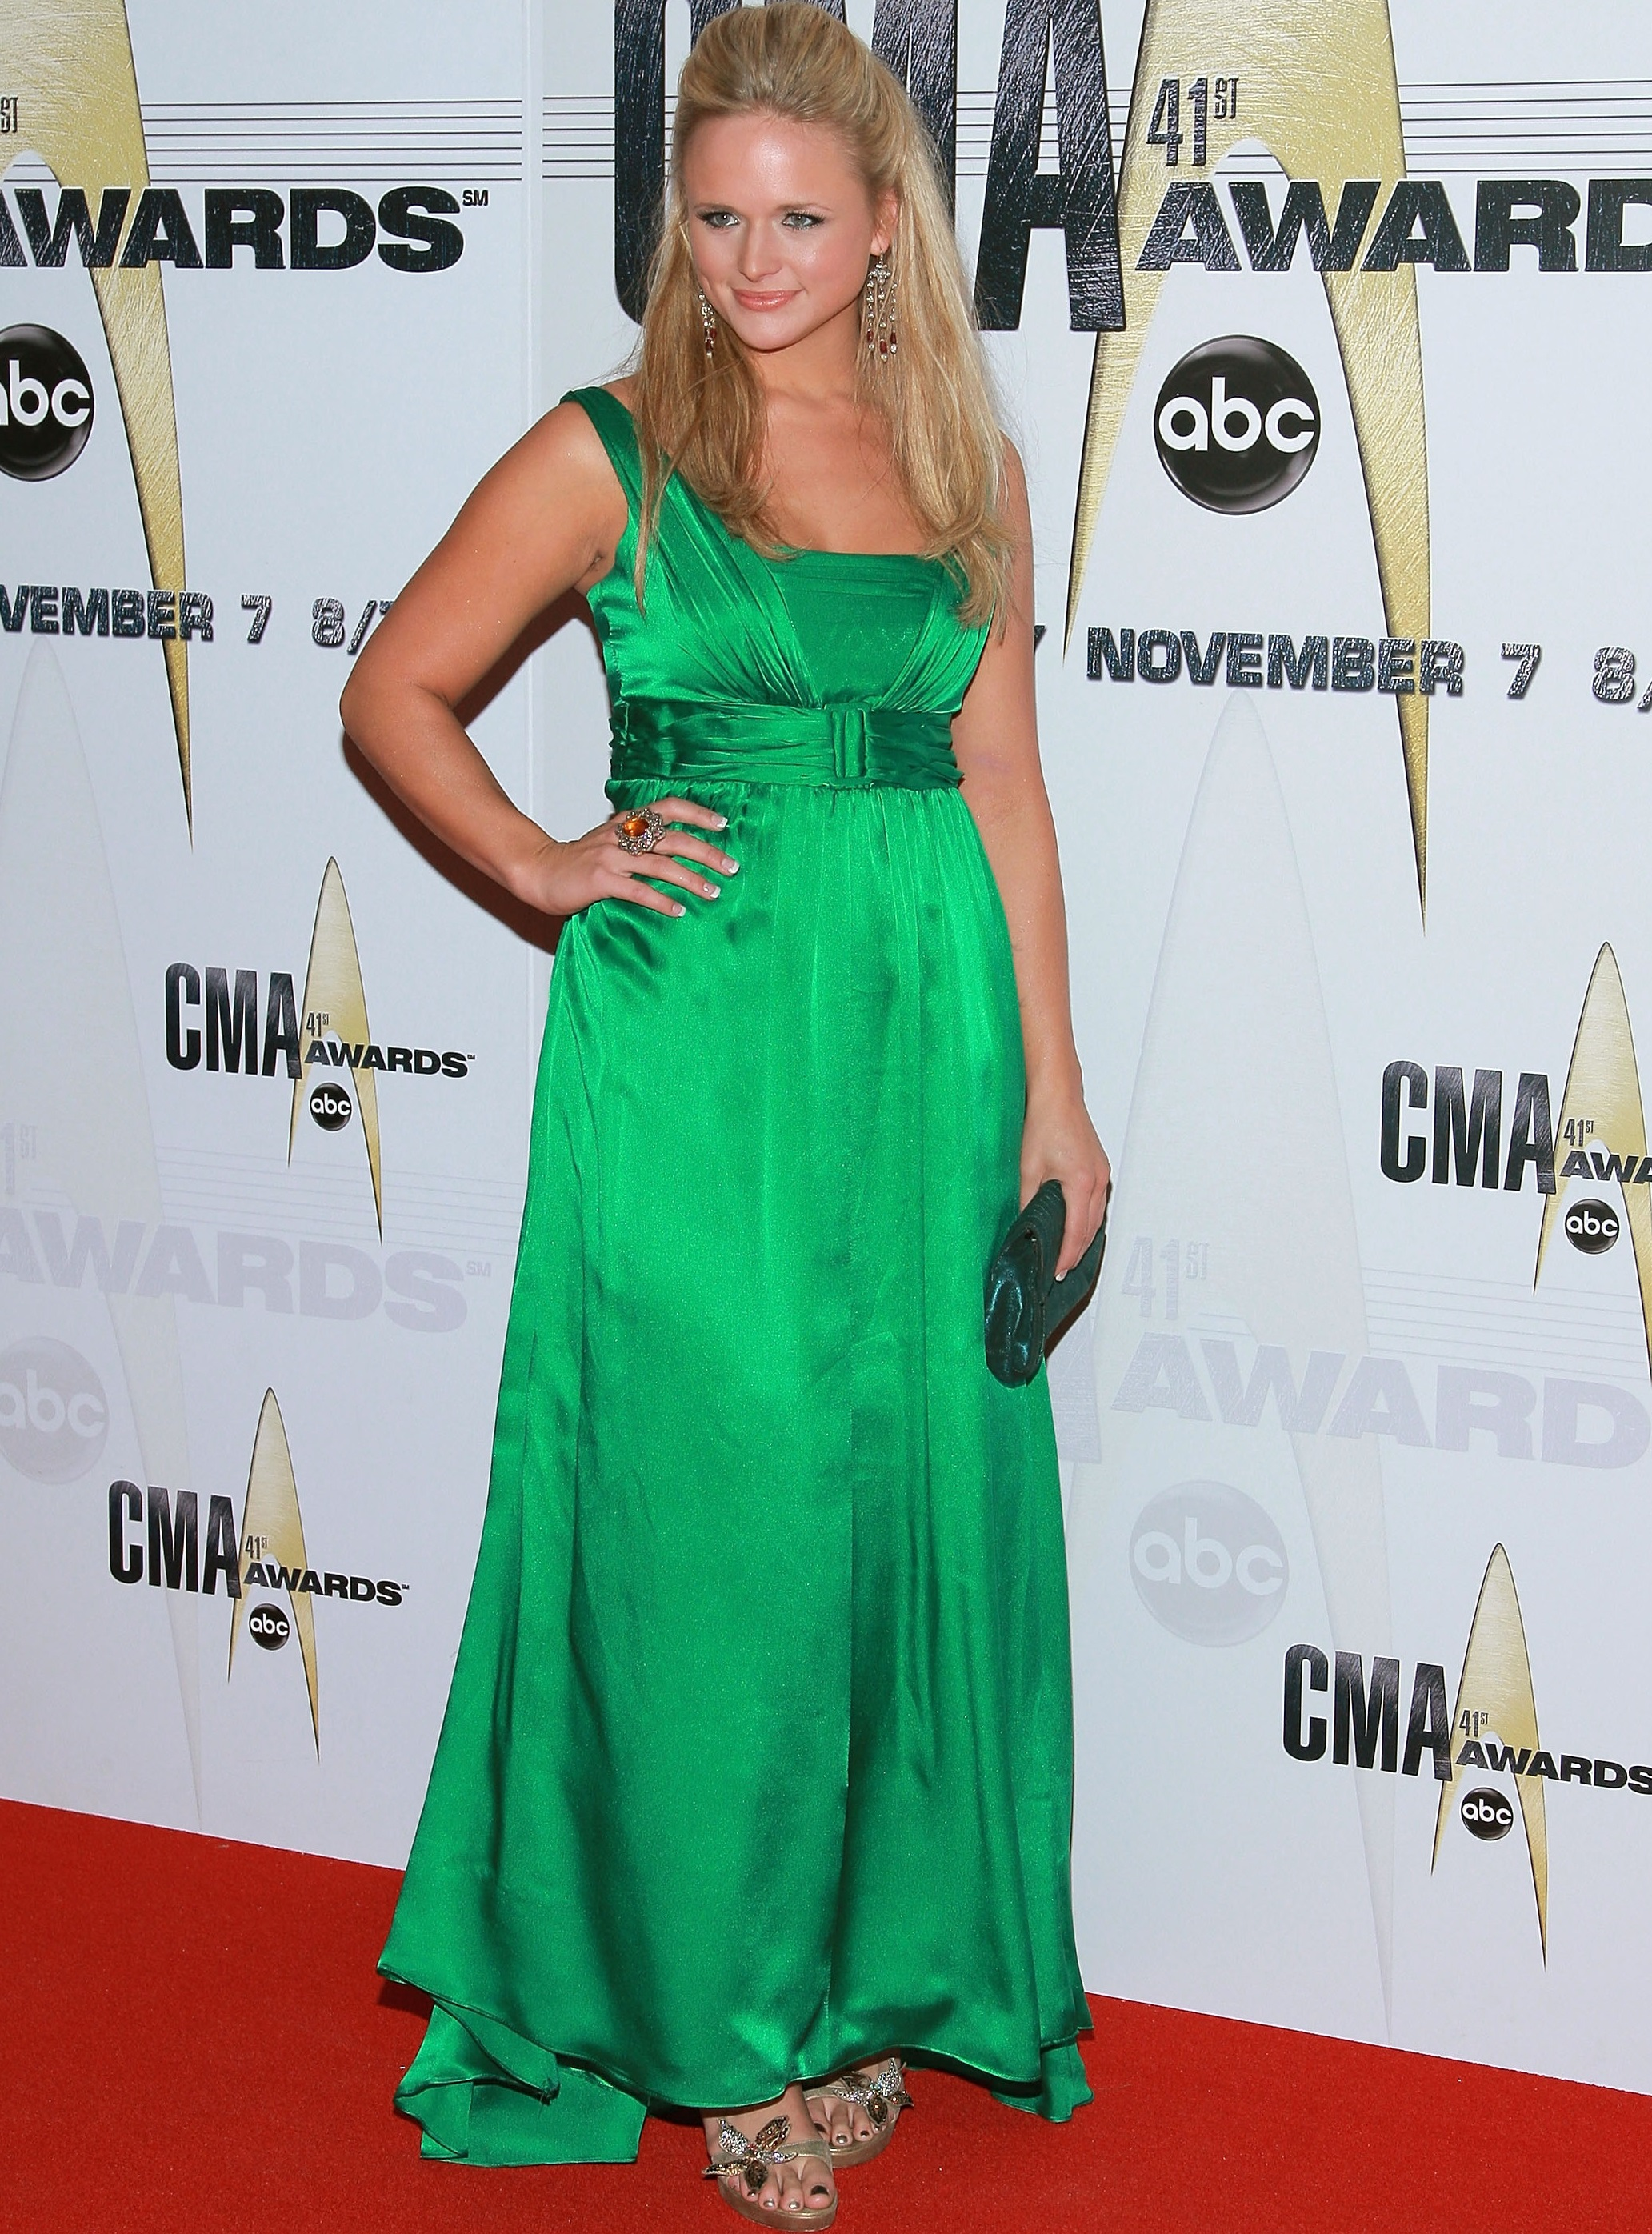 Miranda Lambert arrives at the 41st Annual CMA Awards at the Sommet Center on November 7, 2007 in Nashville TN; Photo by Michael Loccisano/FilmMagic